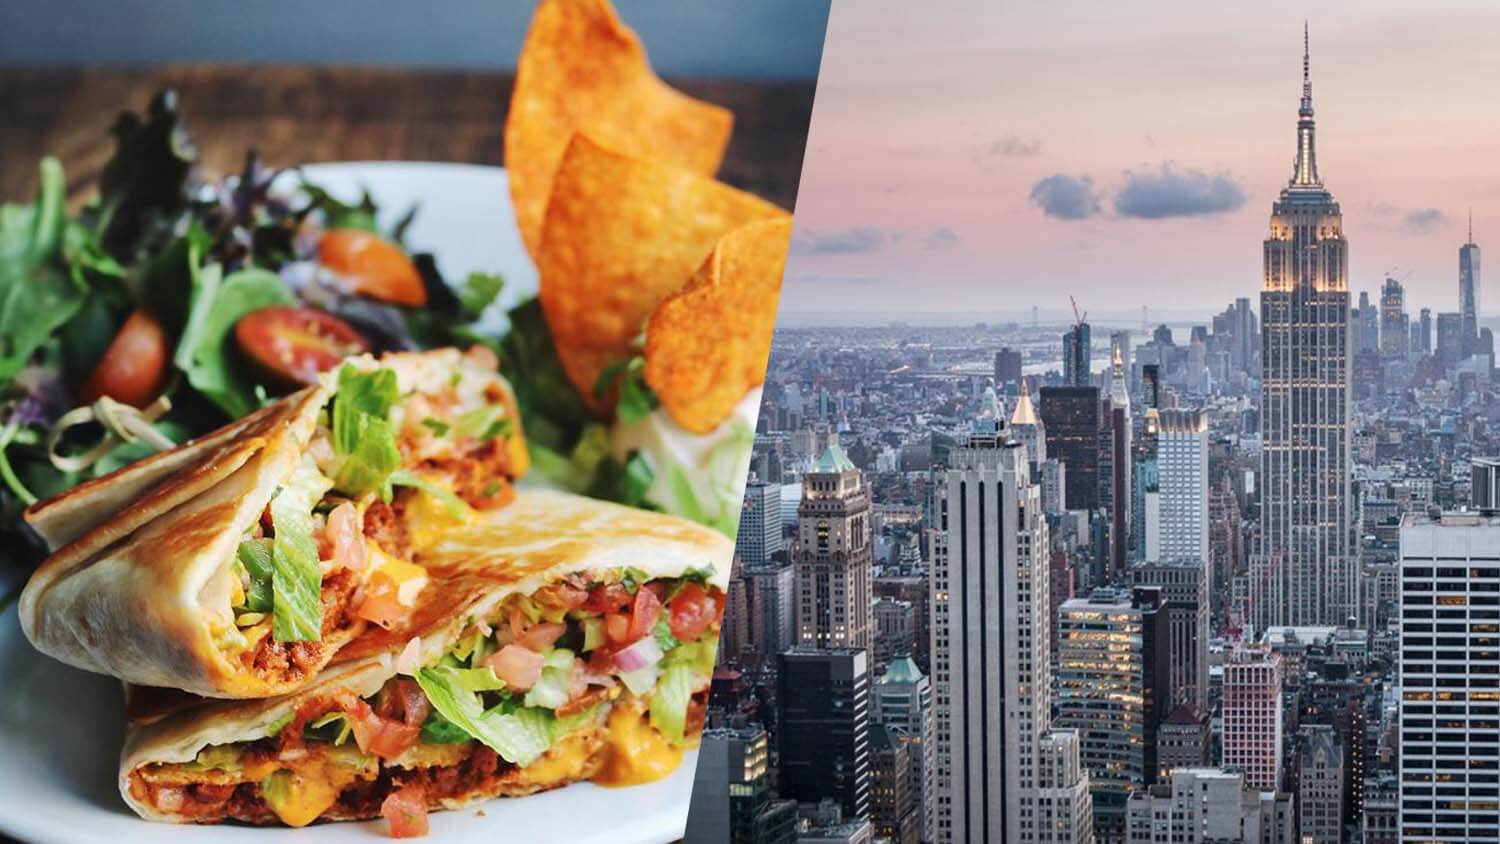 New York City Named Best City for Vegan Food By Finance Website Wallethub